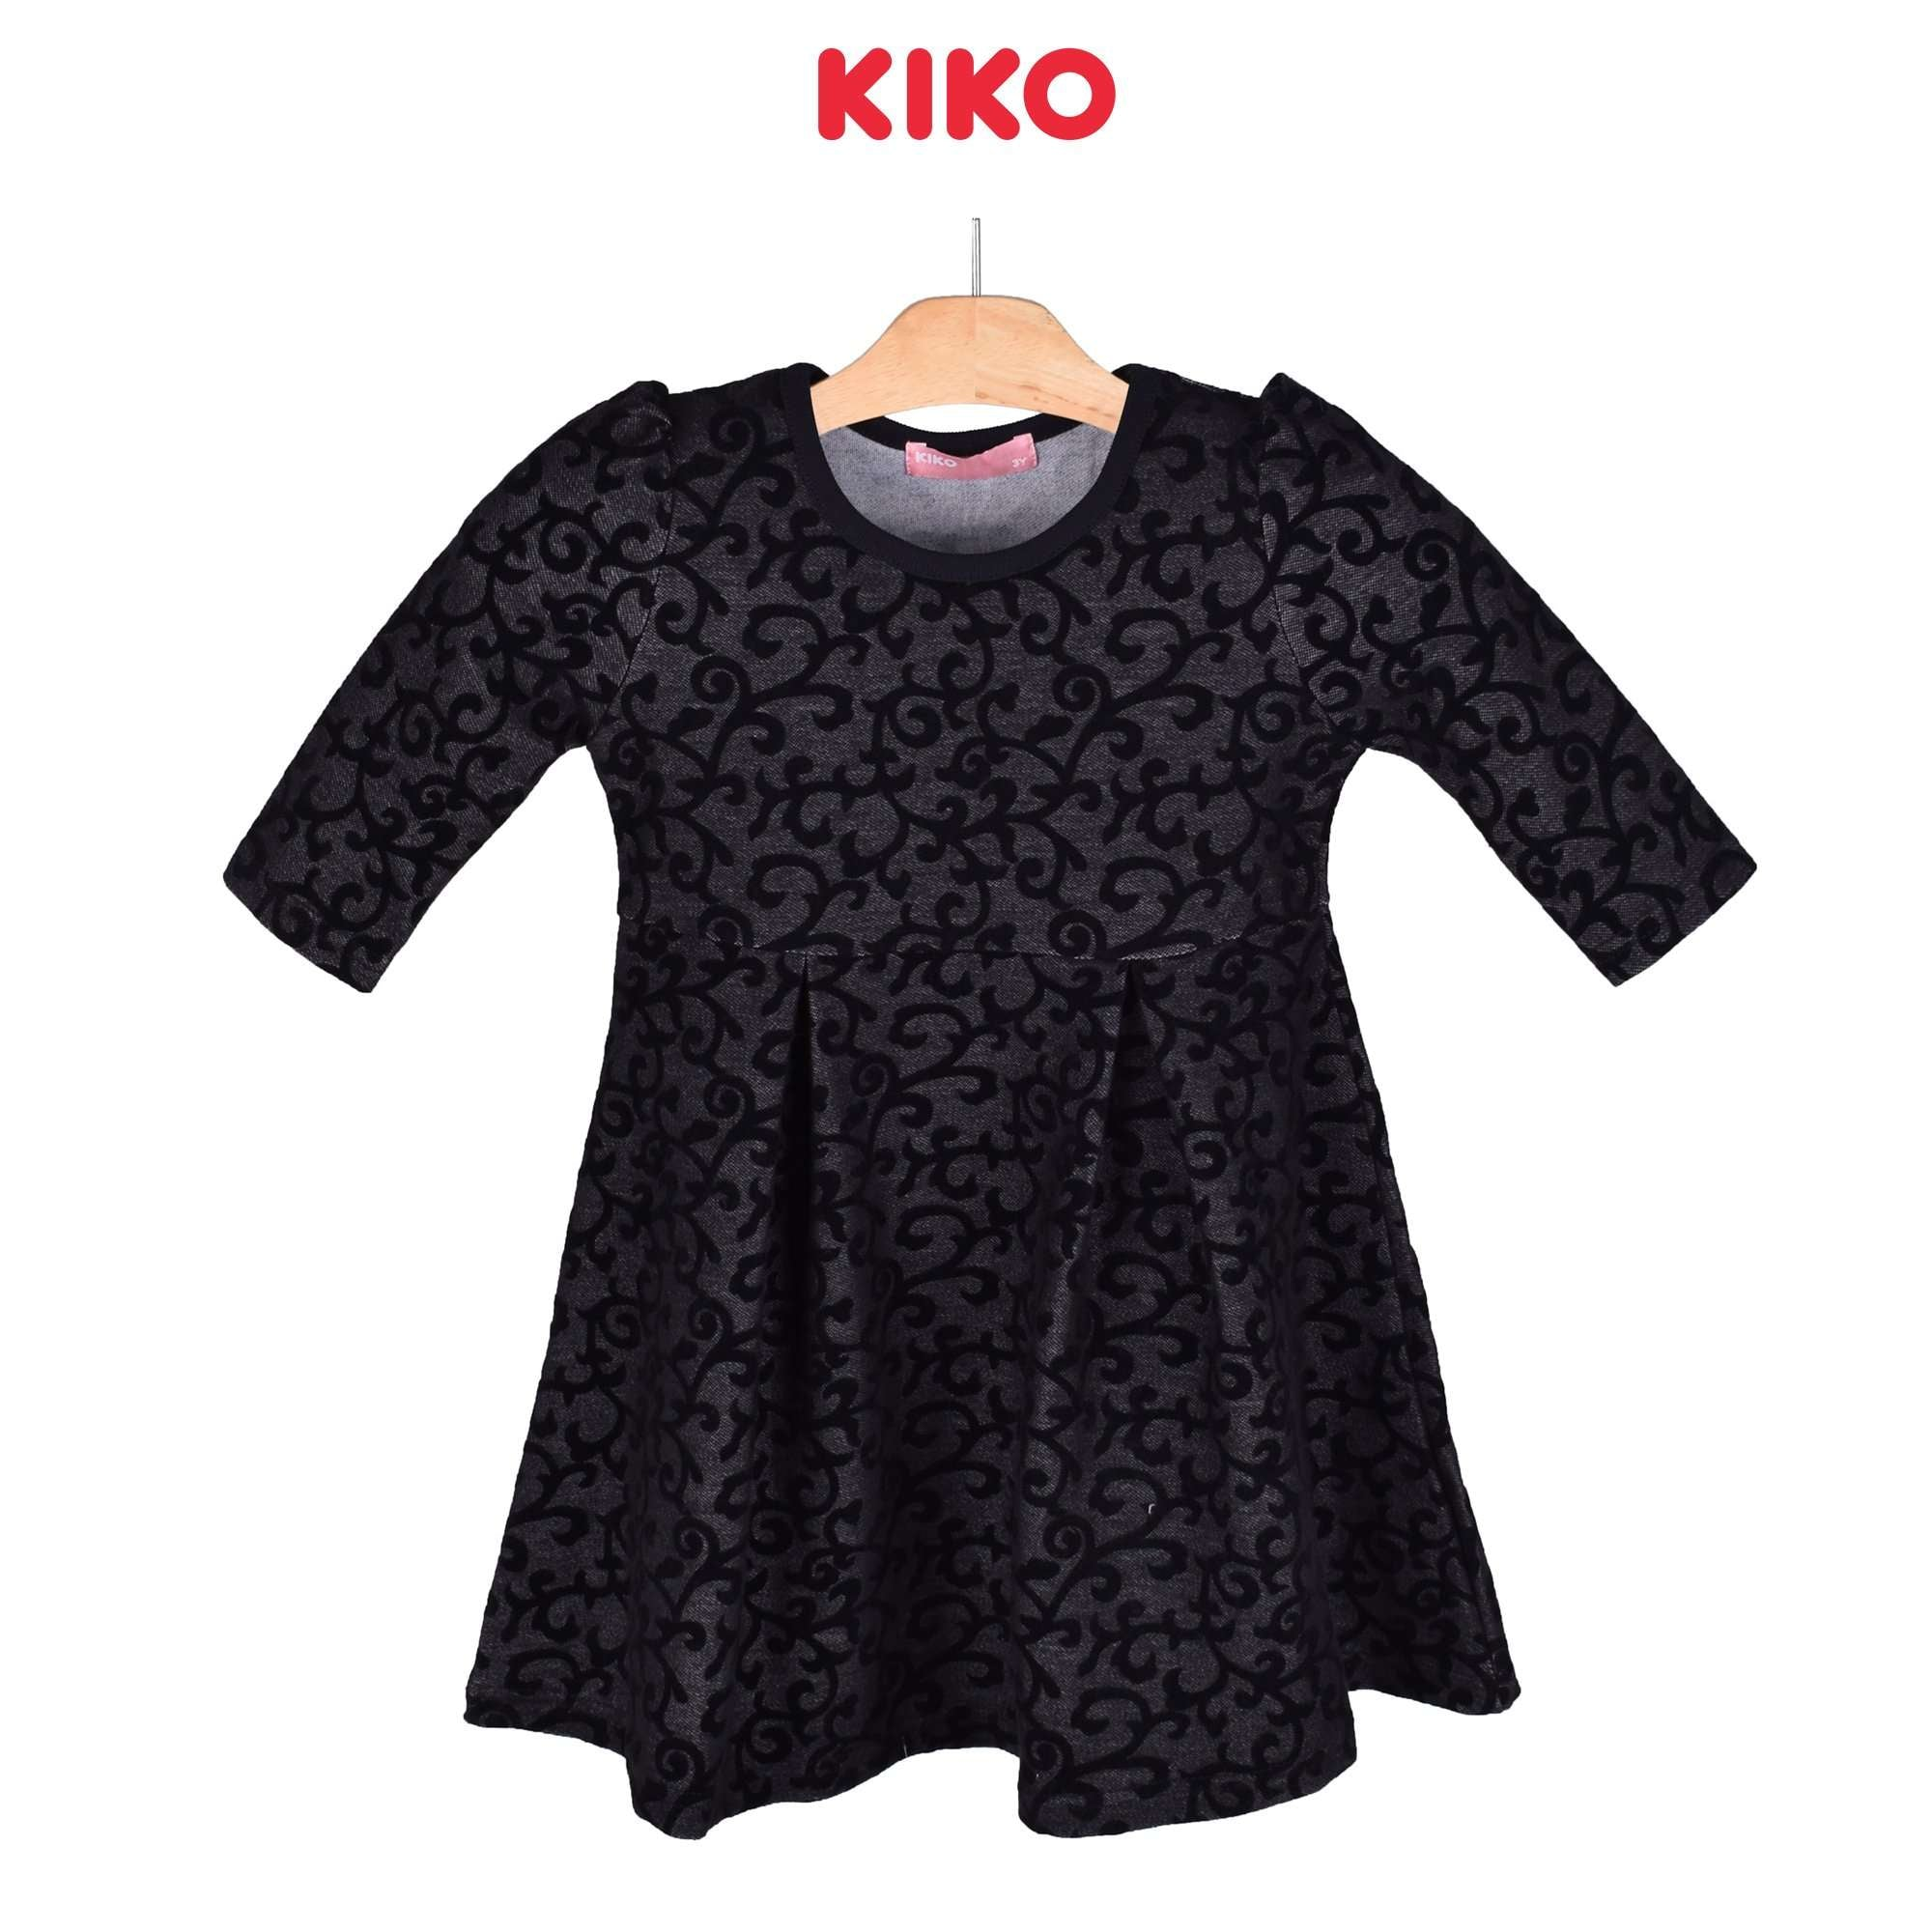 KIKO Girl Three Quarters Sleeve Dress Knit 126072-331 : Buy KIKO online at CMG.MY